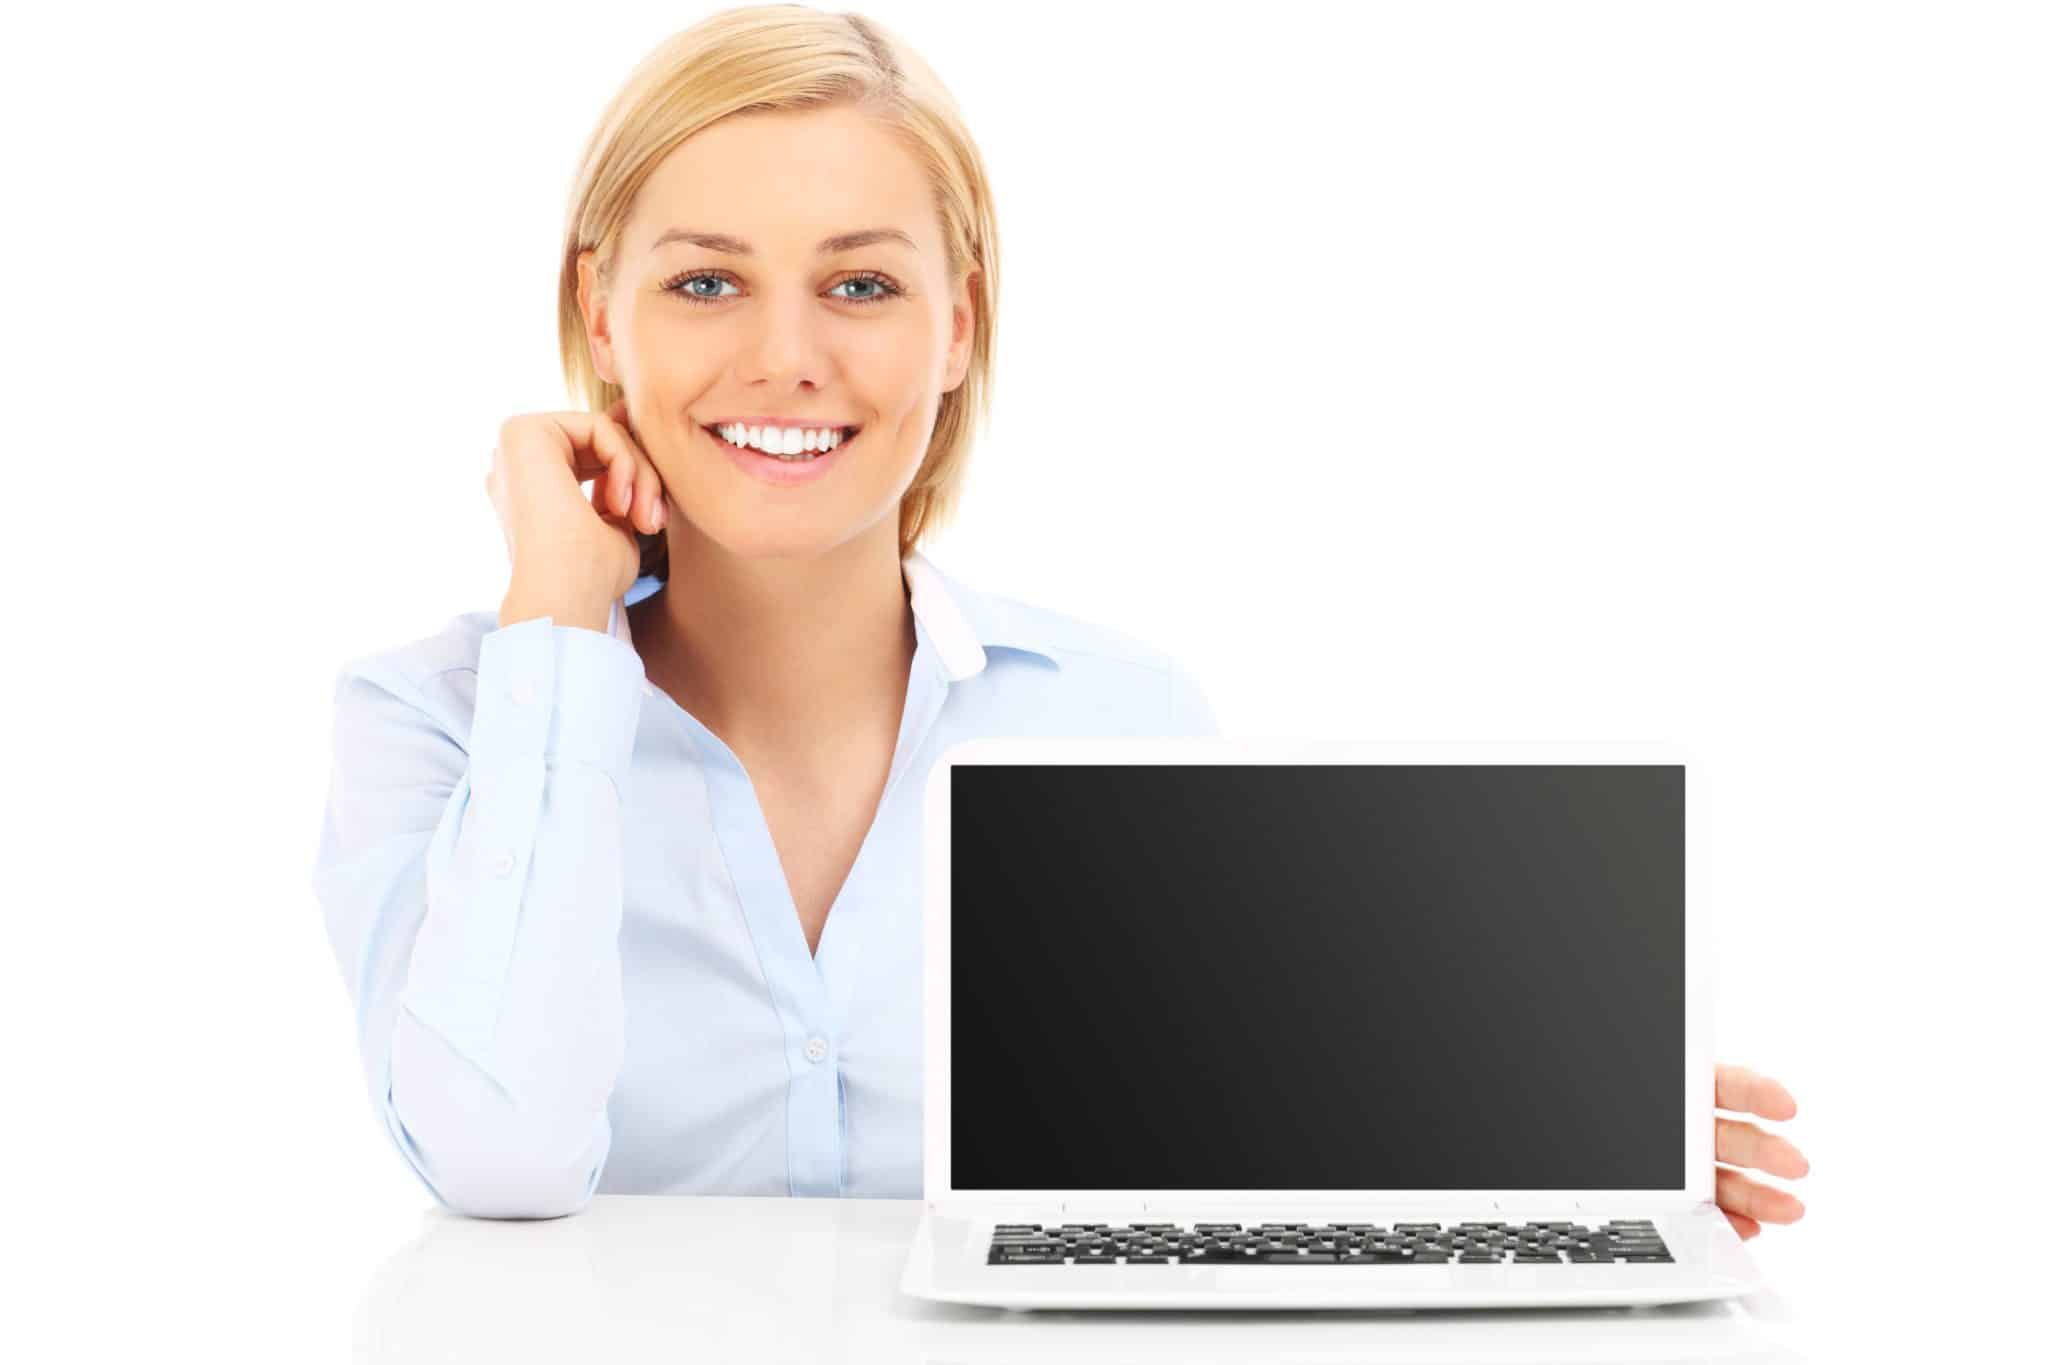 Photo of a female online worker smiling